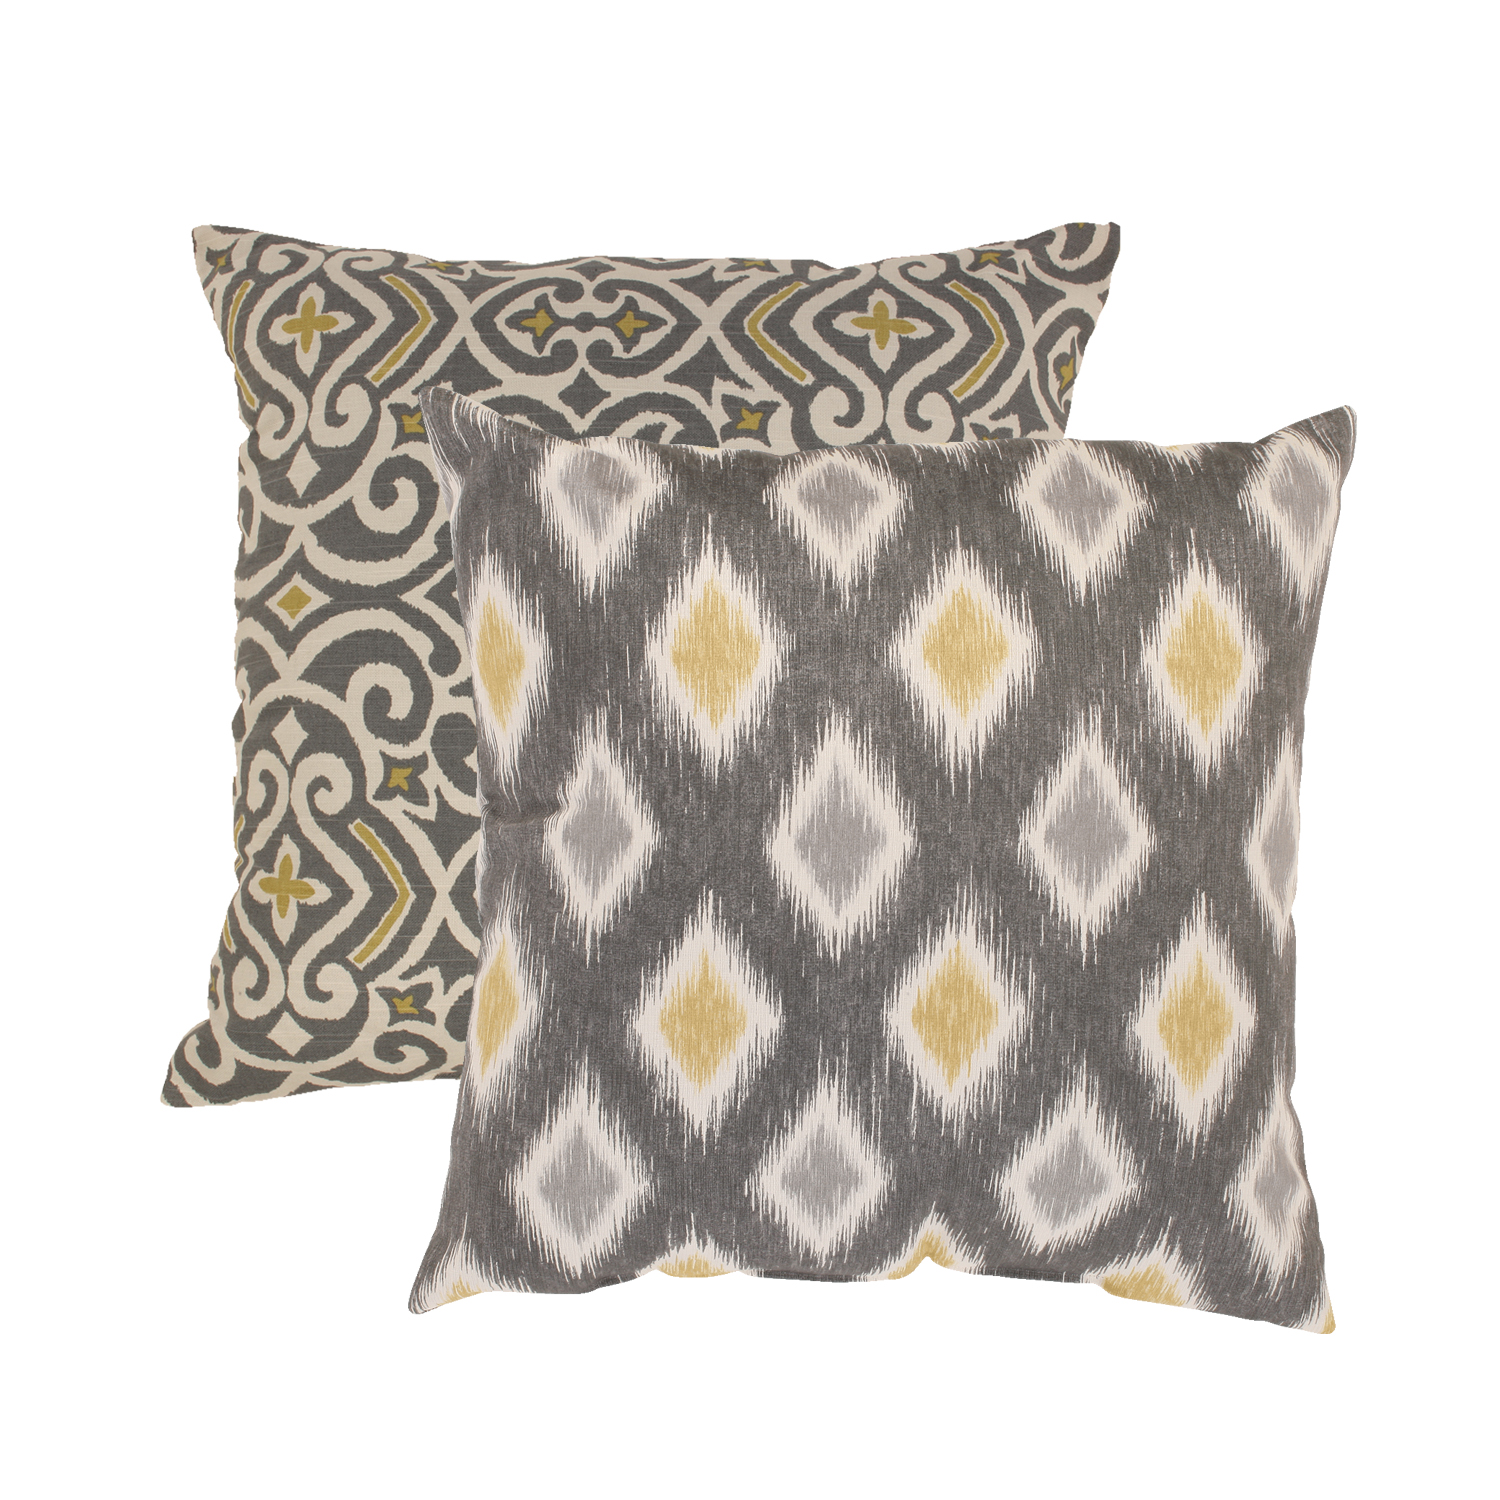 Charming throw pillows for couch with zig zag and geometric pattern  for living room with decorative throw pillows for couch